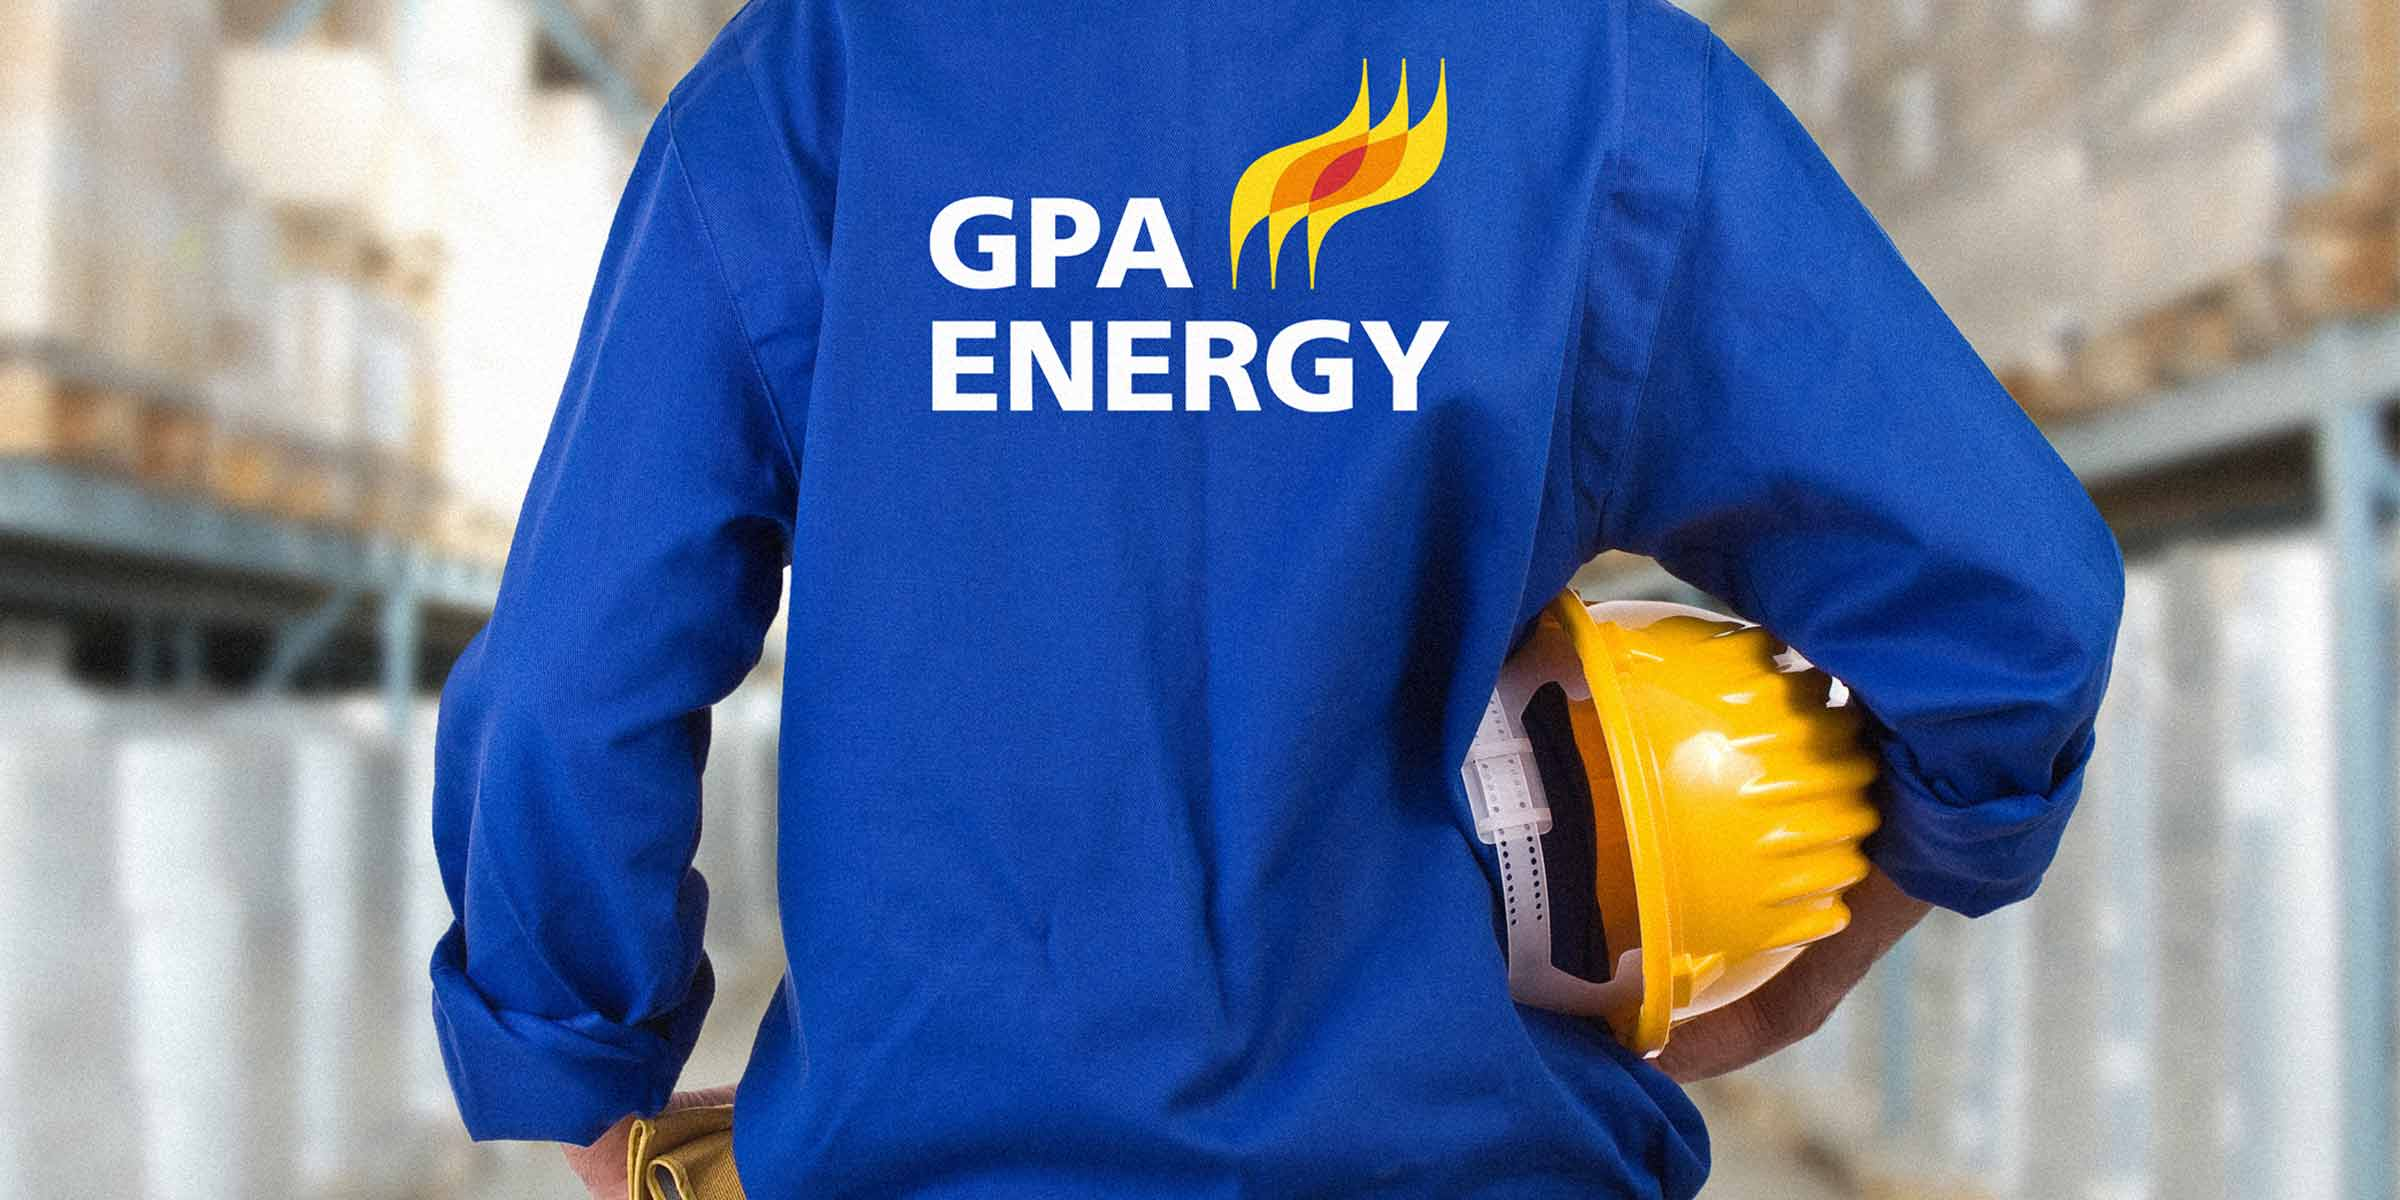 GPA Energy uniform